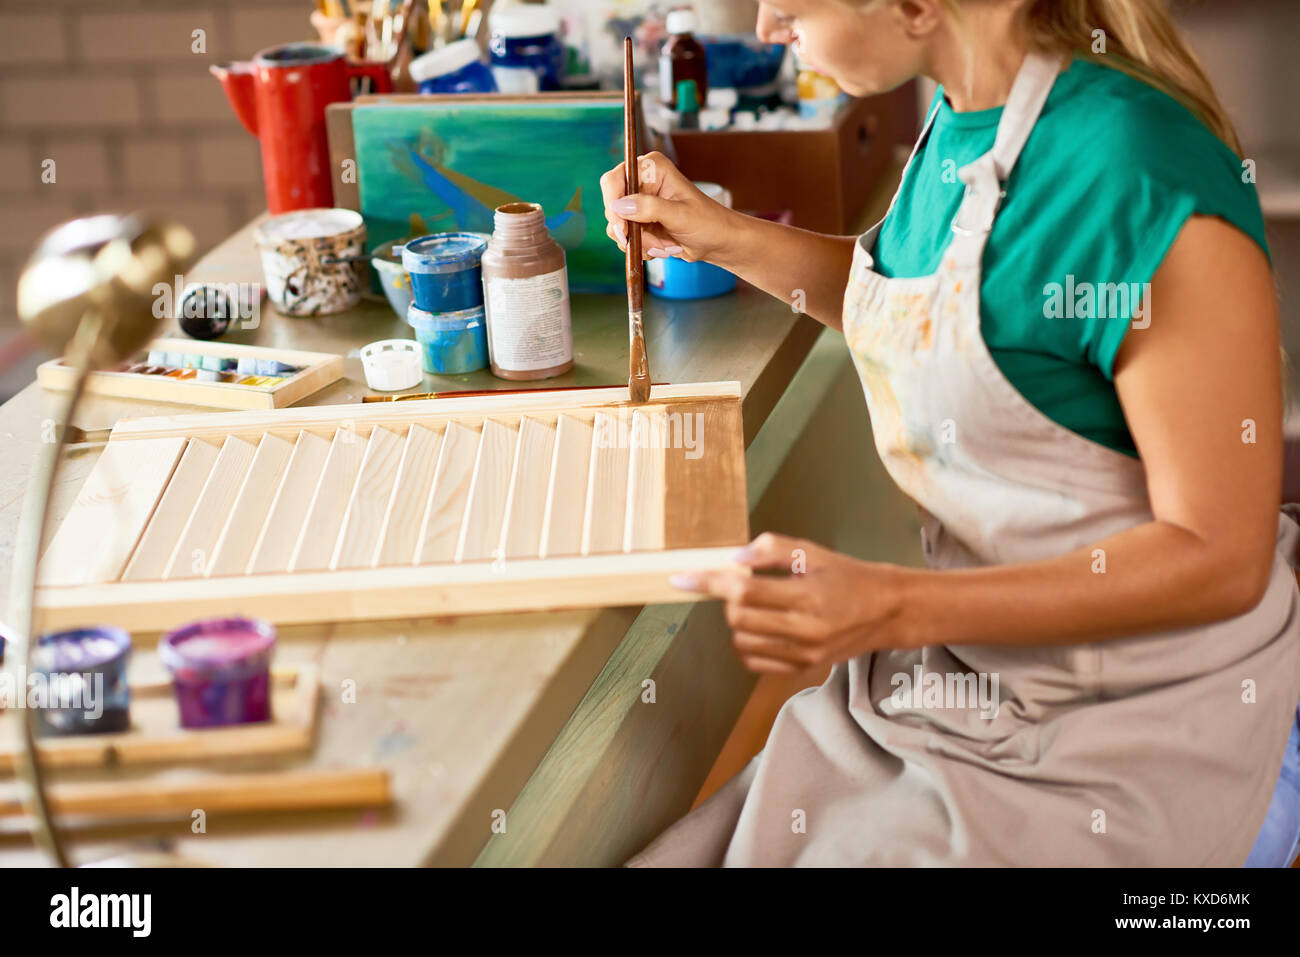 Young Artist Crafting in Studio - Stock Image